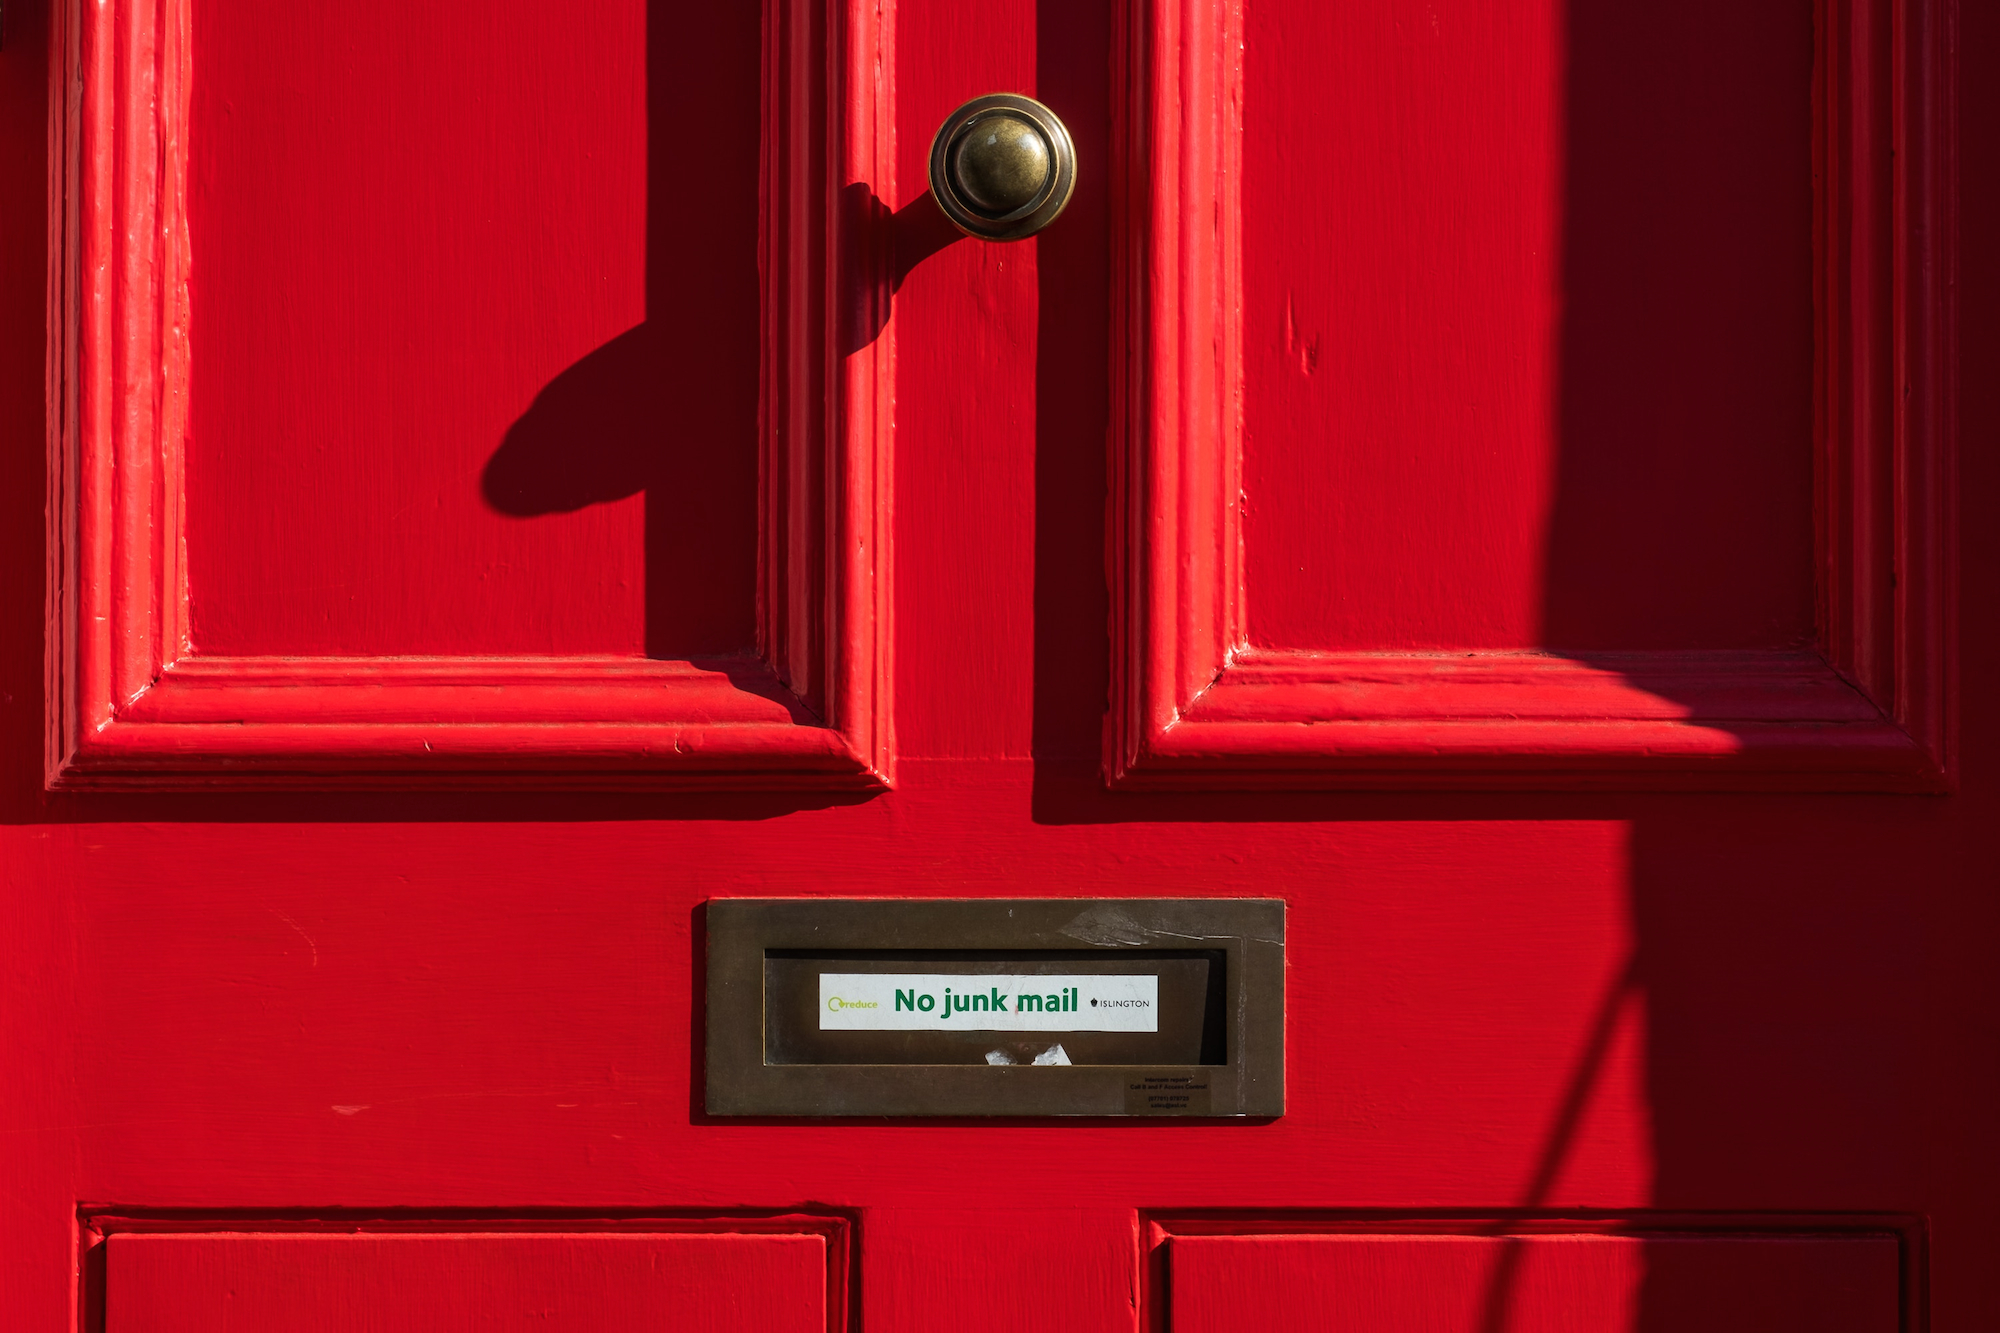 photo of a red door with no junk mail written on it to illustrate using email for your cannabis business, but not spamming